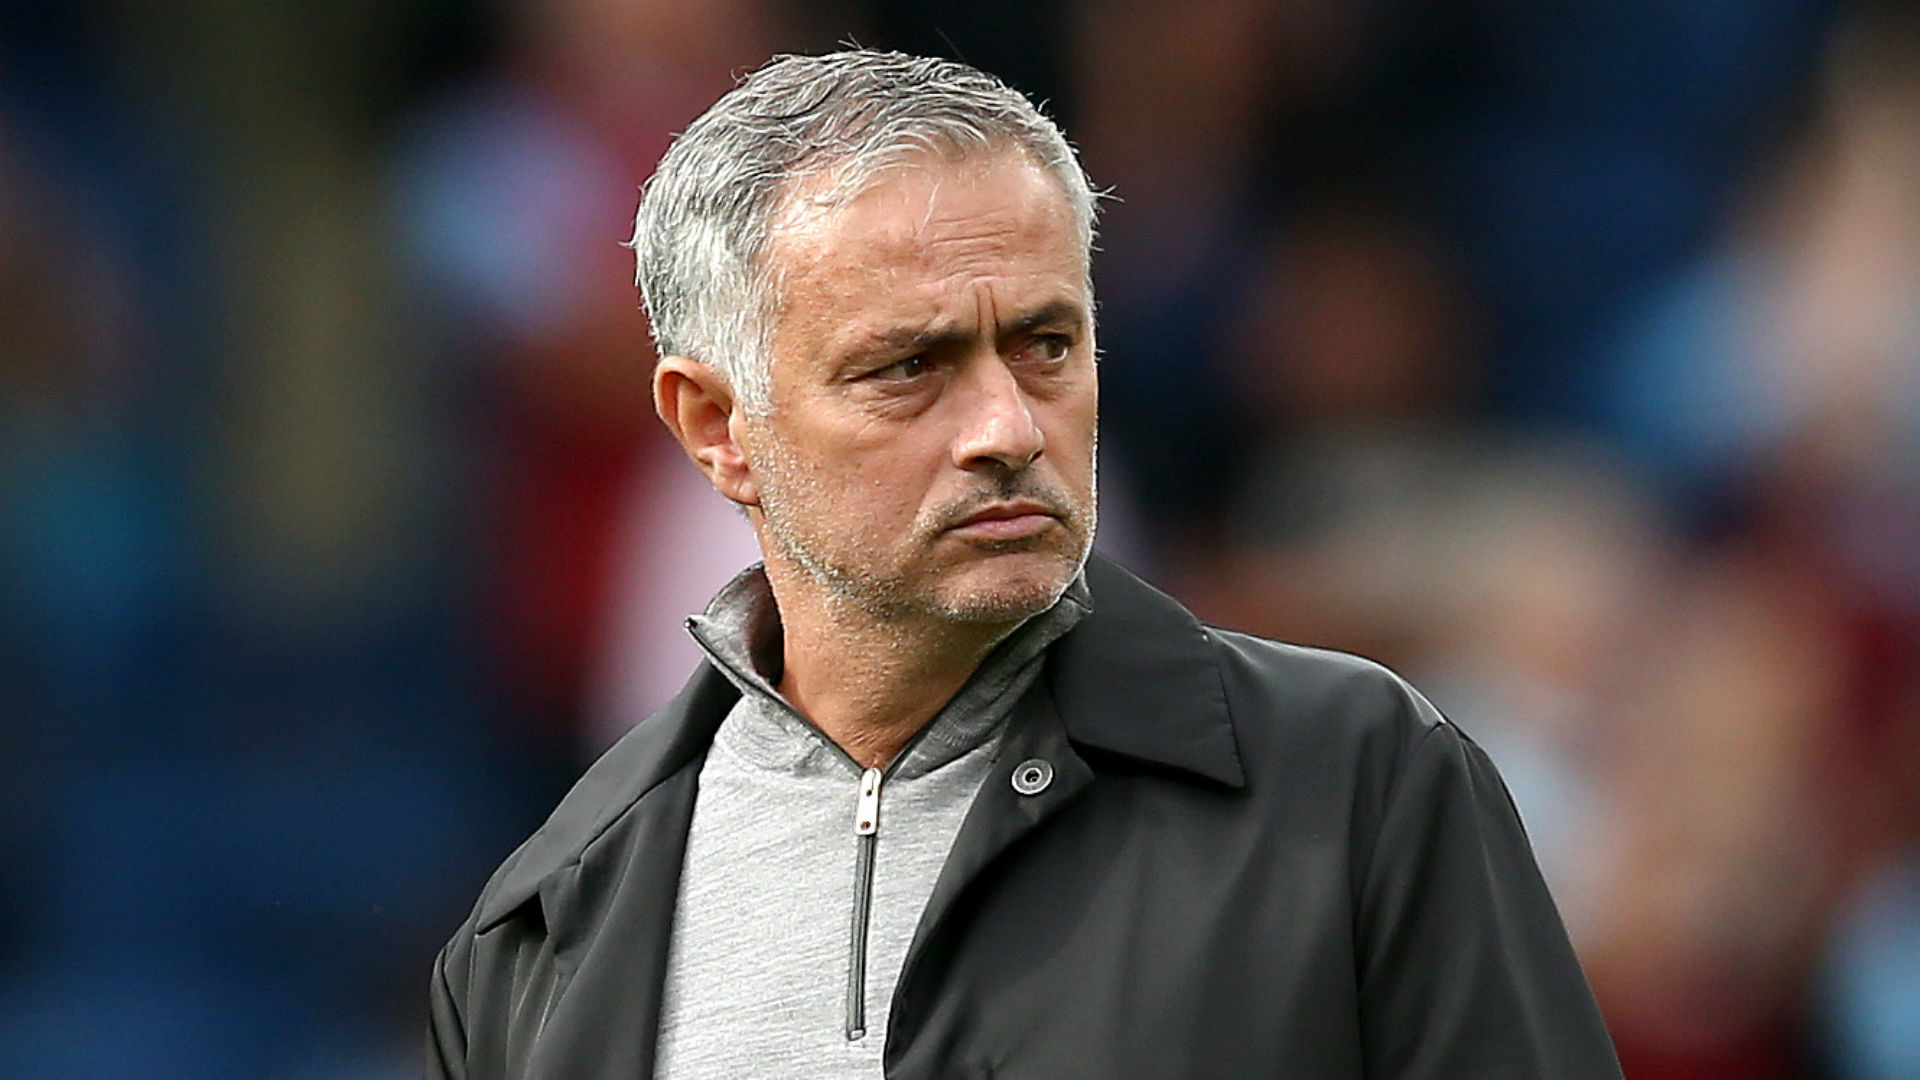 Man United heading in right direction under Mourinho: Schmeichel